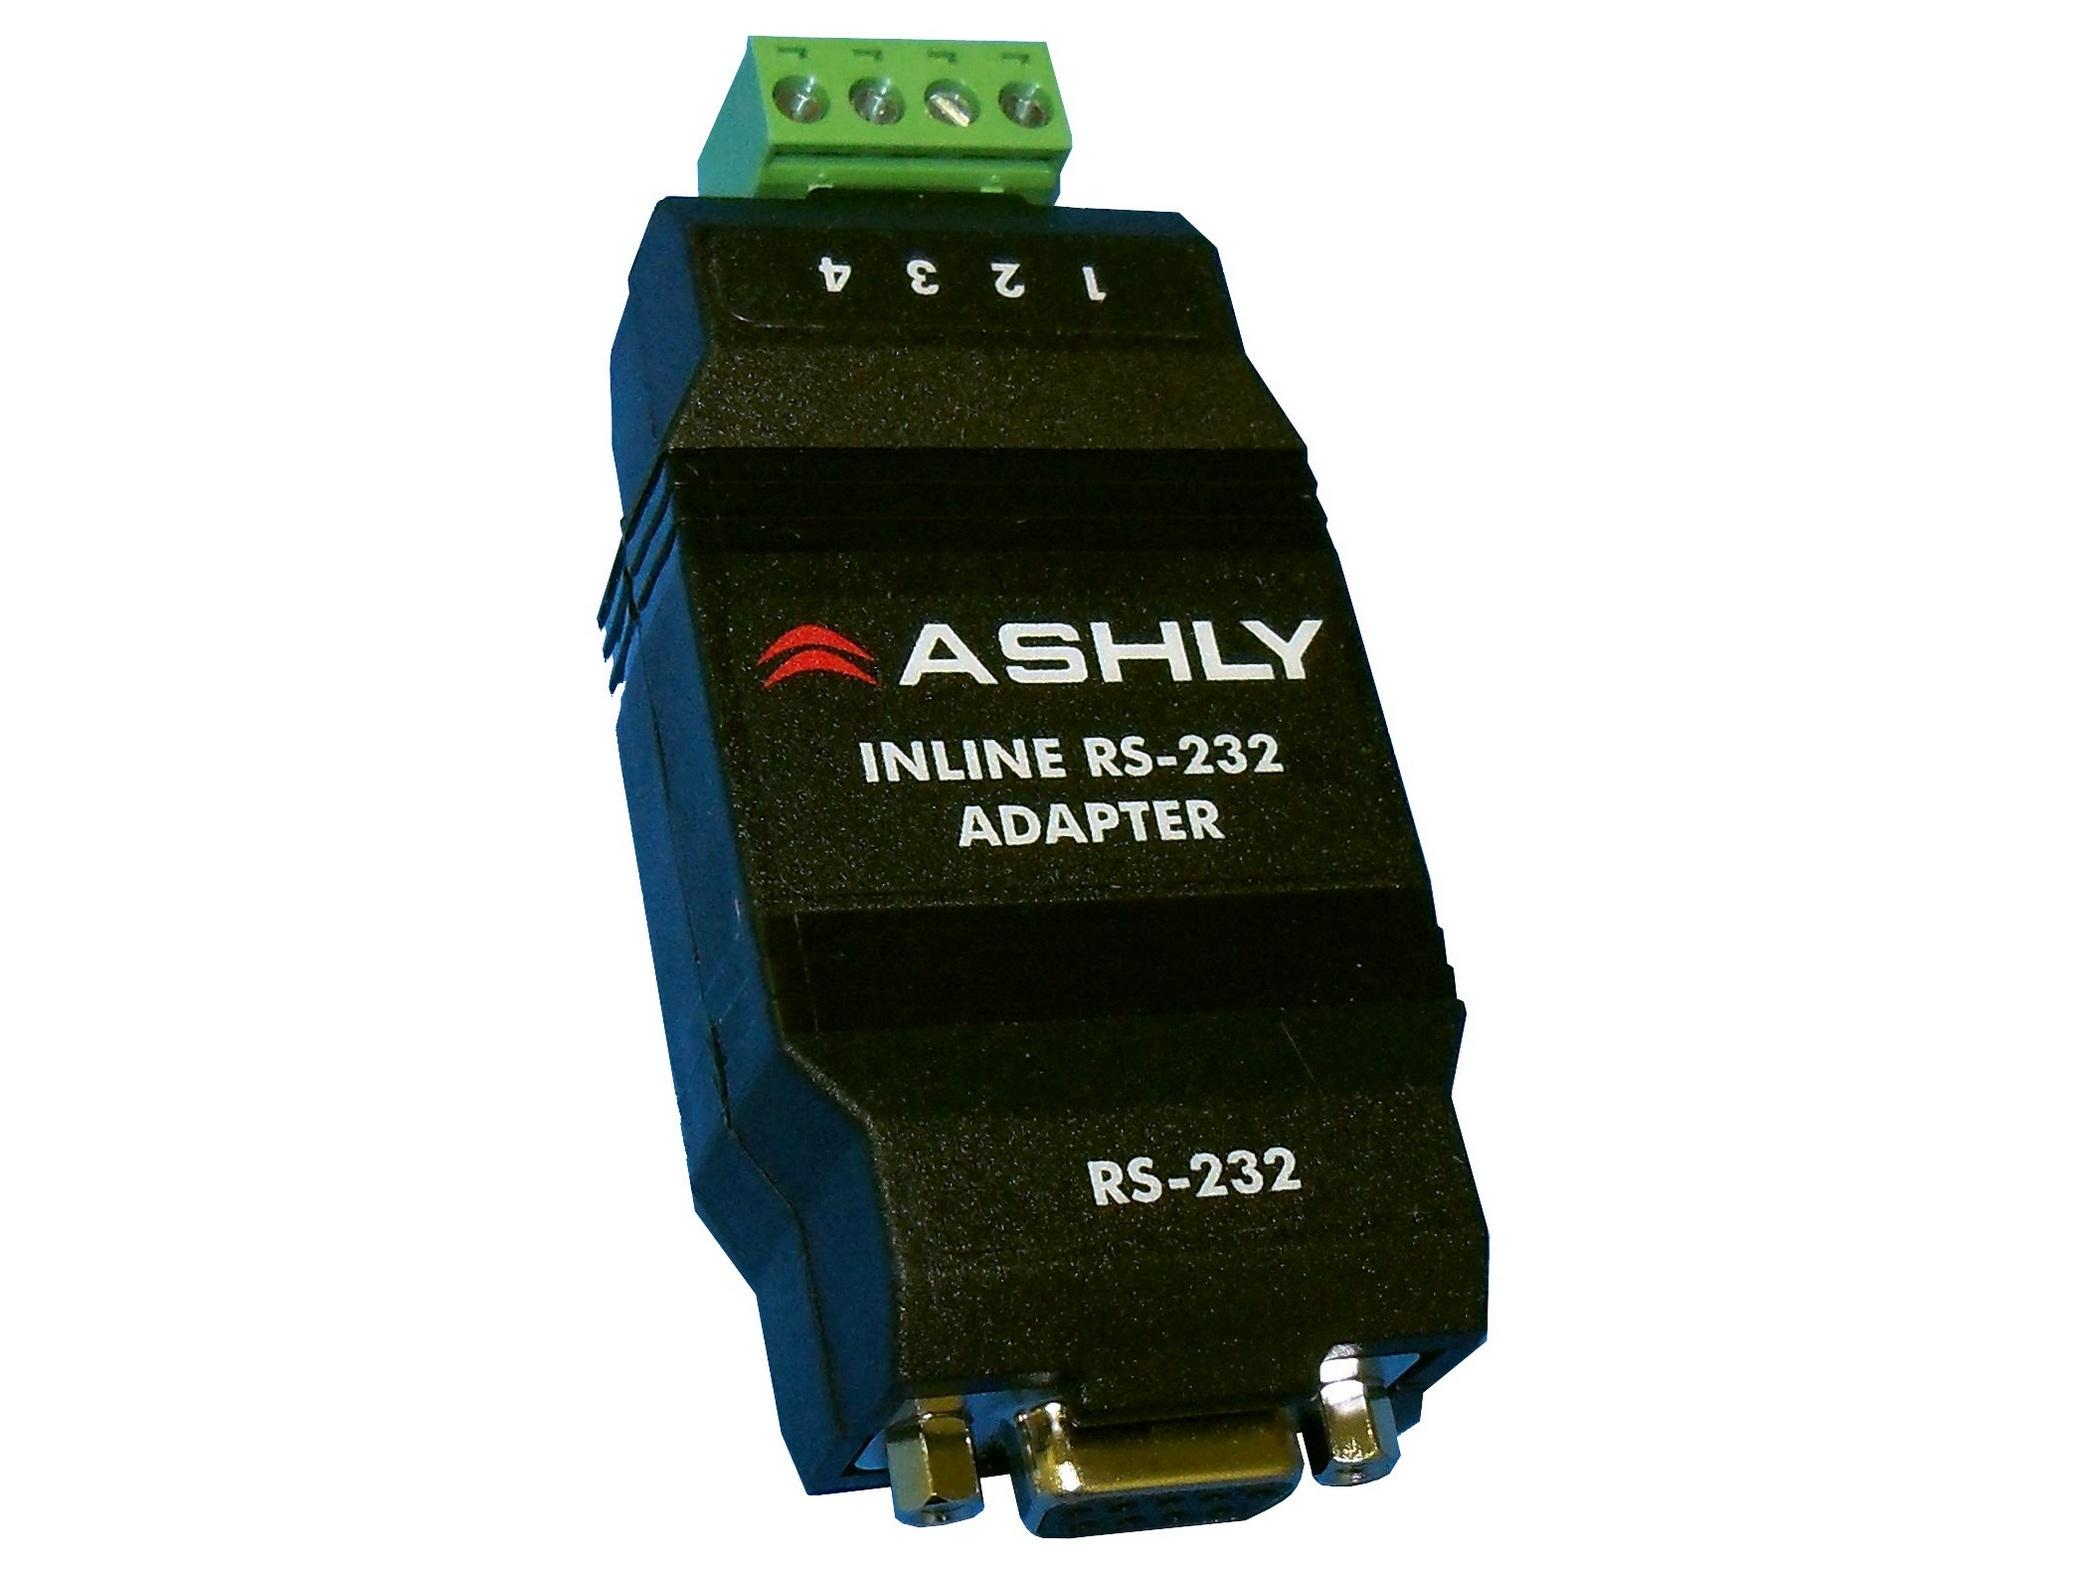 Ashly INA-1 In-line RS-232 Adapter provides connectivity to remote data ports